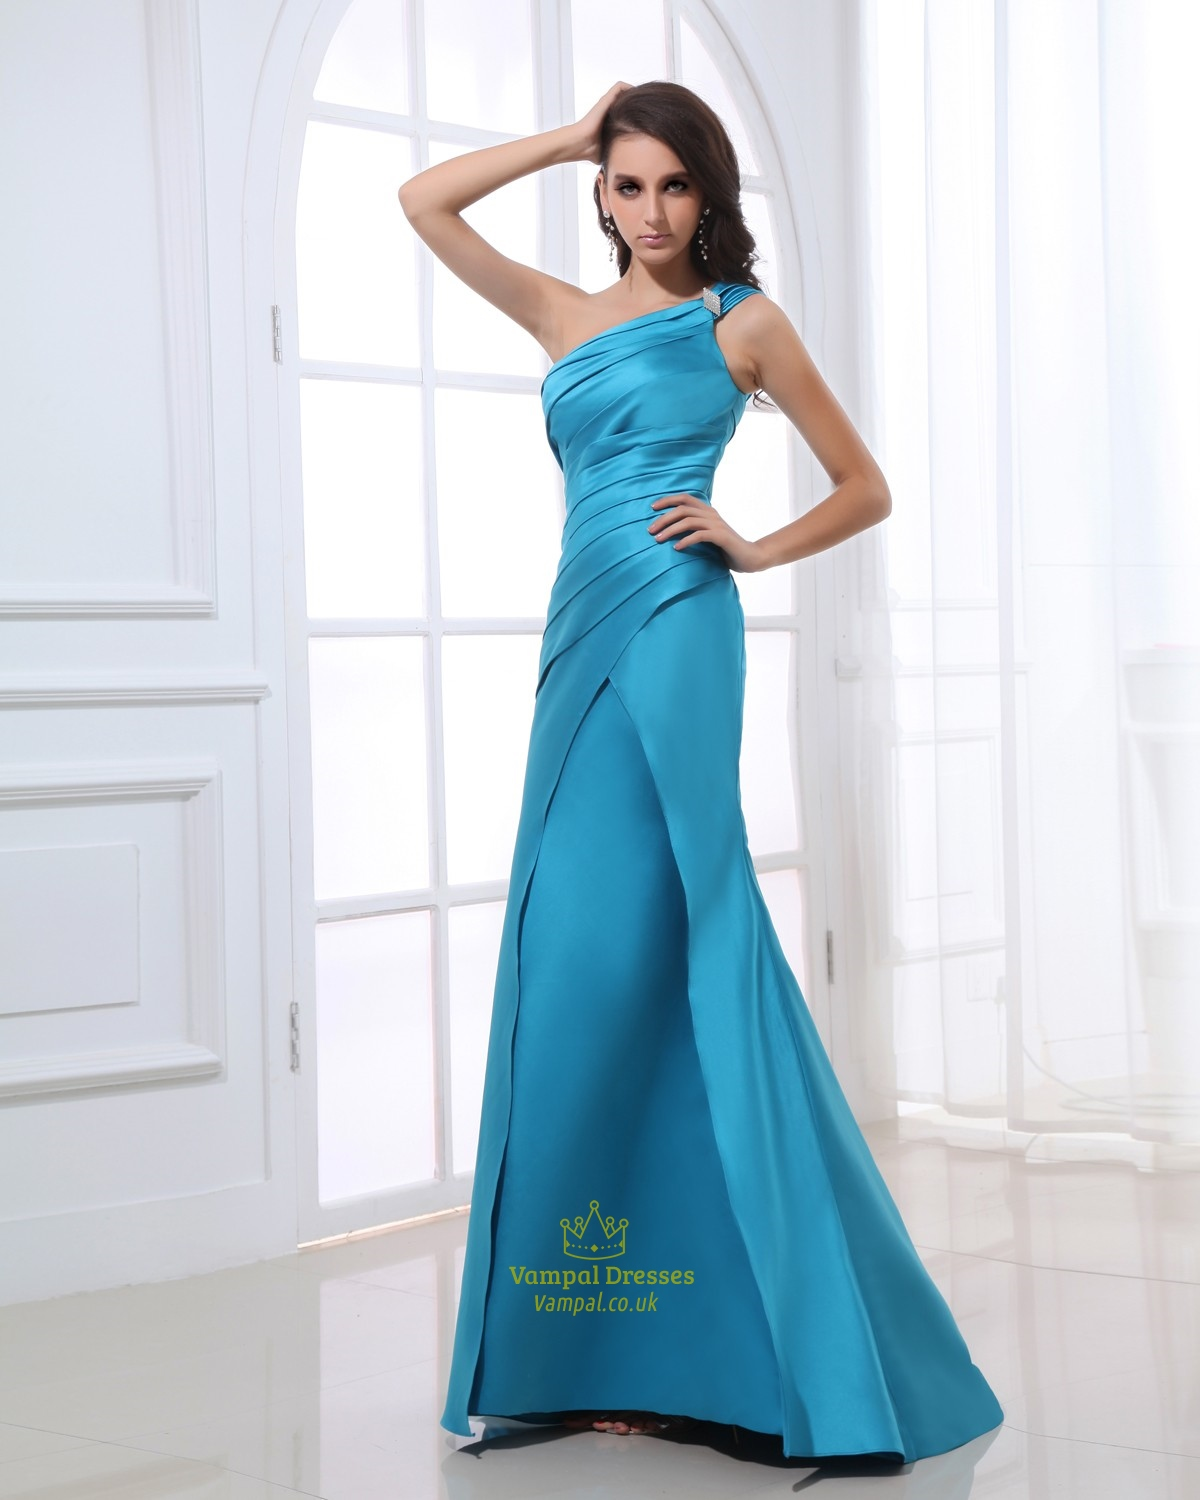 Aqua Blue Dresses Bridesmaid For Women,Aqua Blue Evening Gowns UK ...